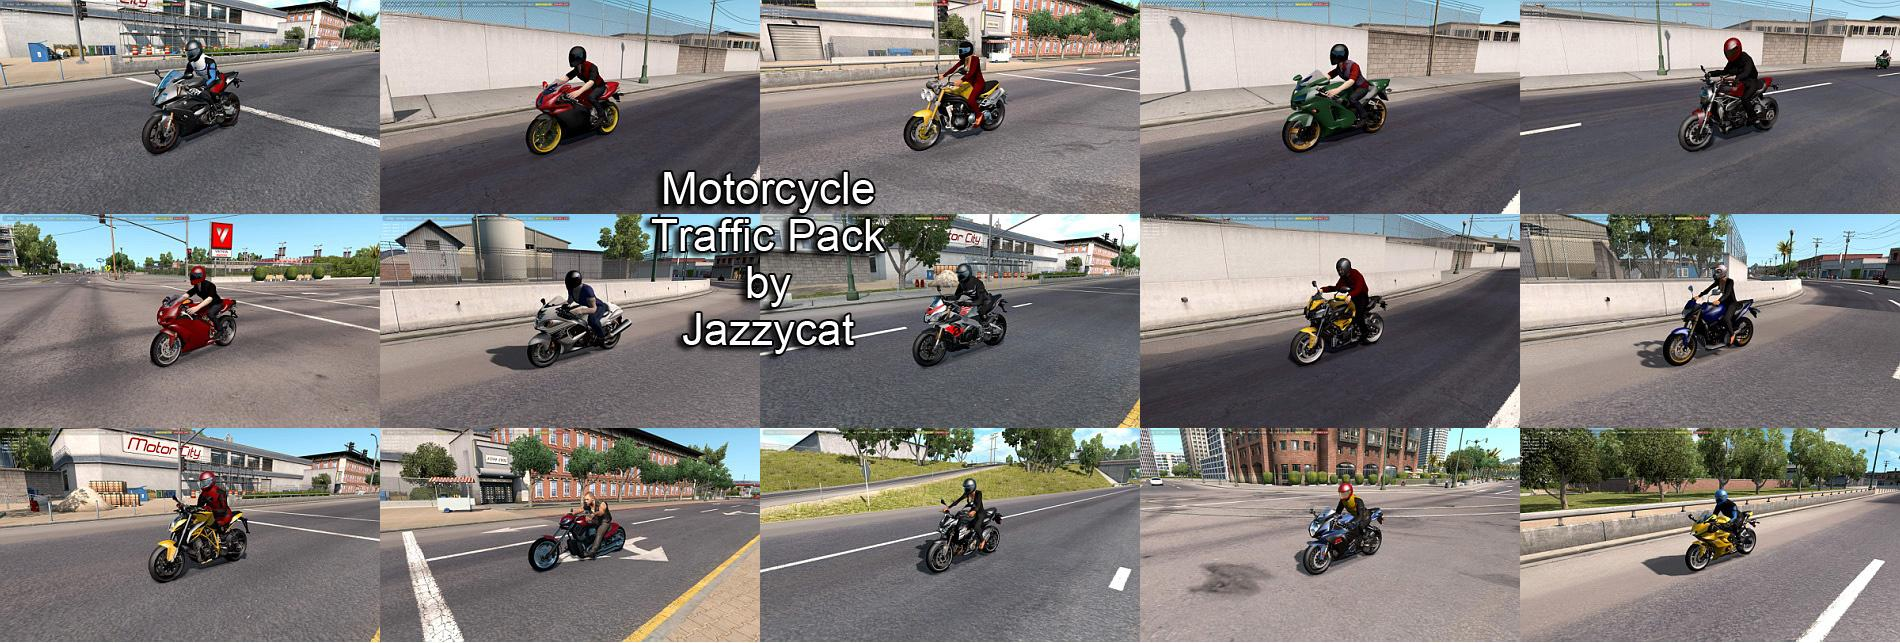 Motorcycle Traffic Pack by Jazzycat v1 3 ATS - ATS mod